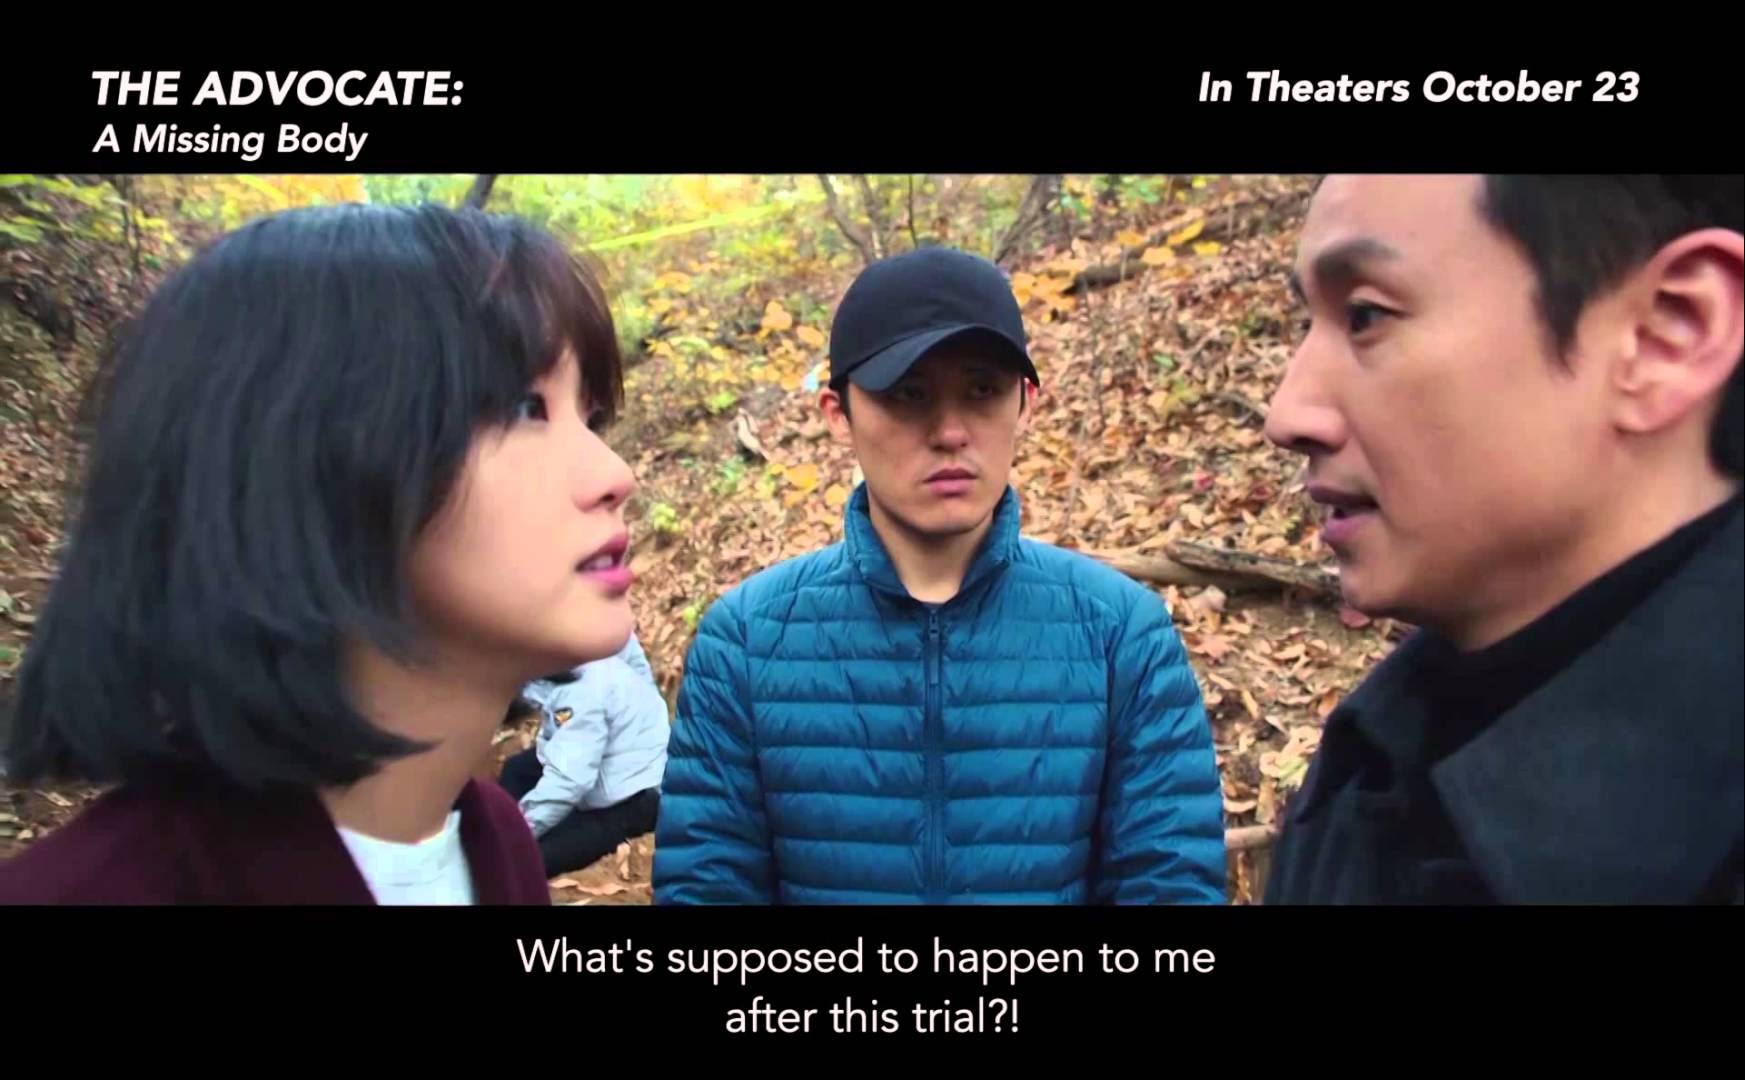 The Advocate: A Missing Body (성난 변호사) 30-second Teaser Trailer w/English Subtitles [HD]